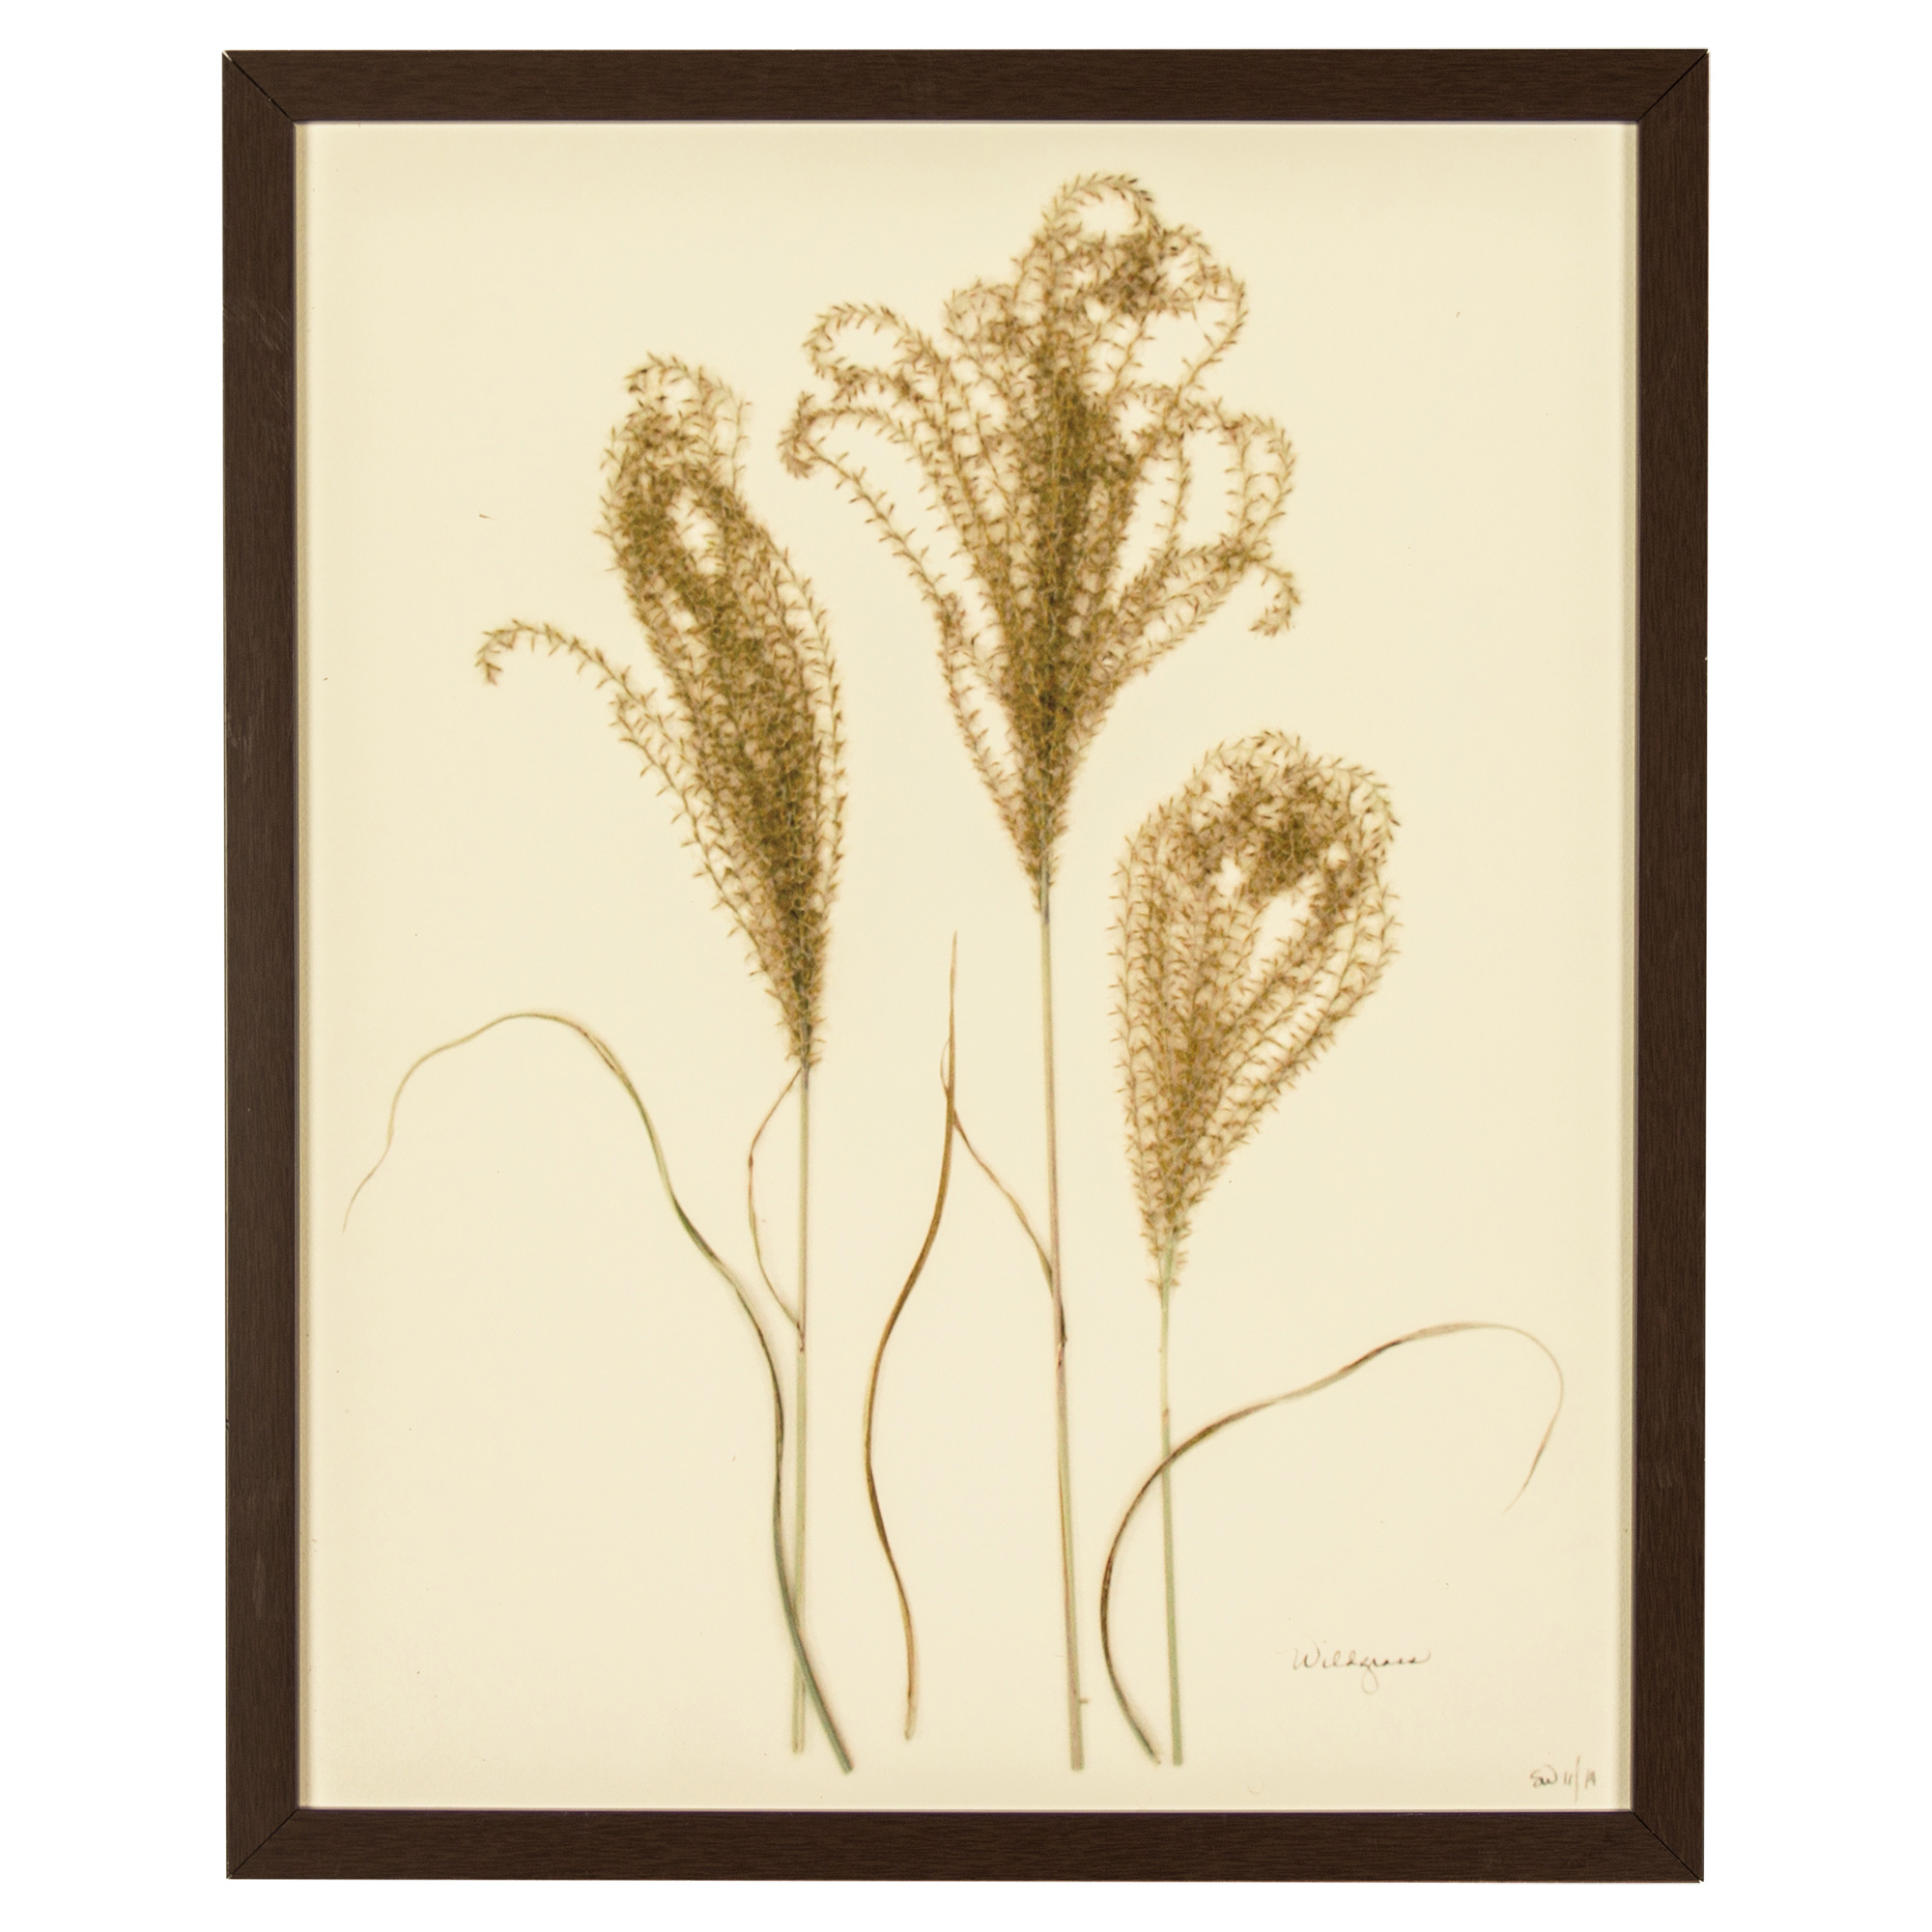 French Country Wildgrass Print Botanical Framed Wall Art - II